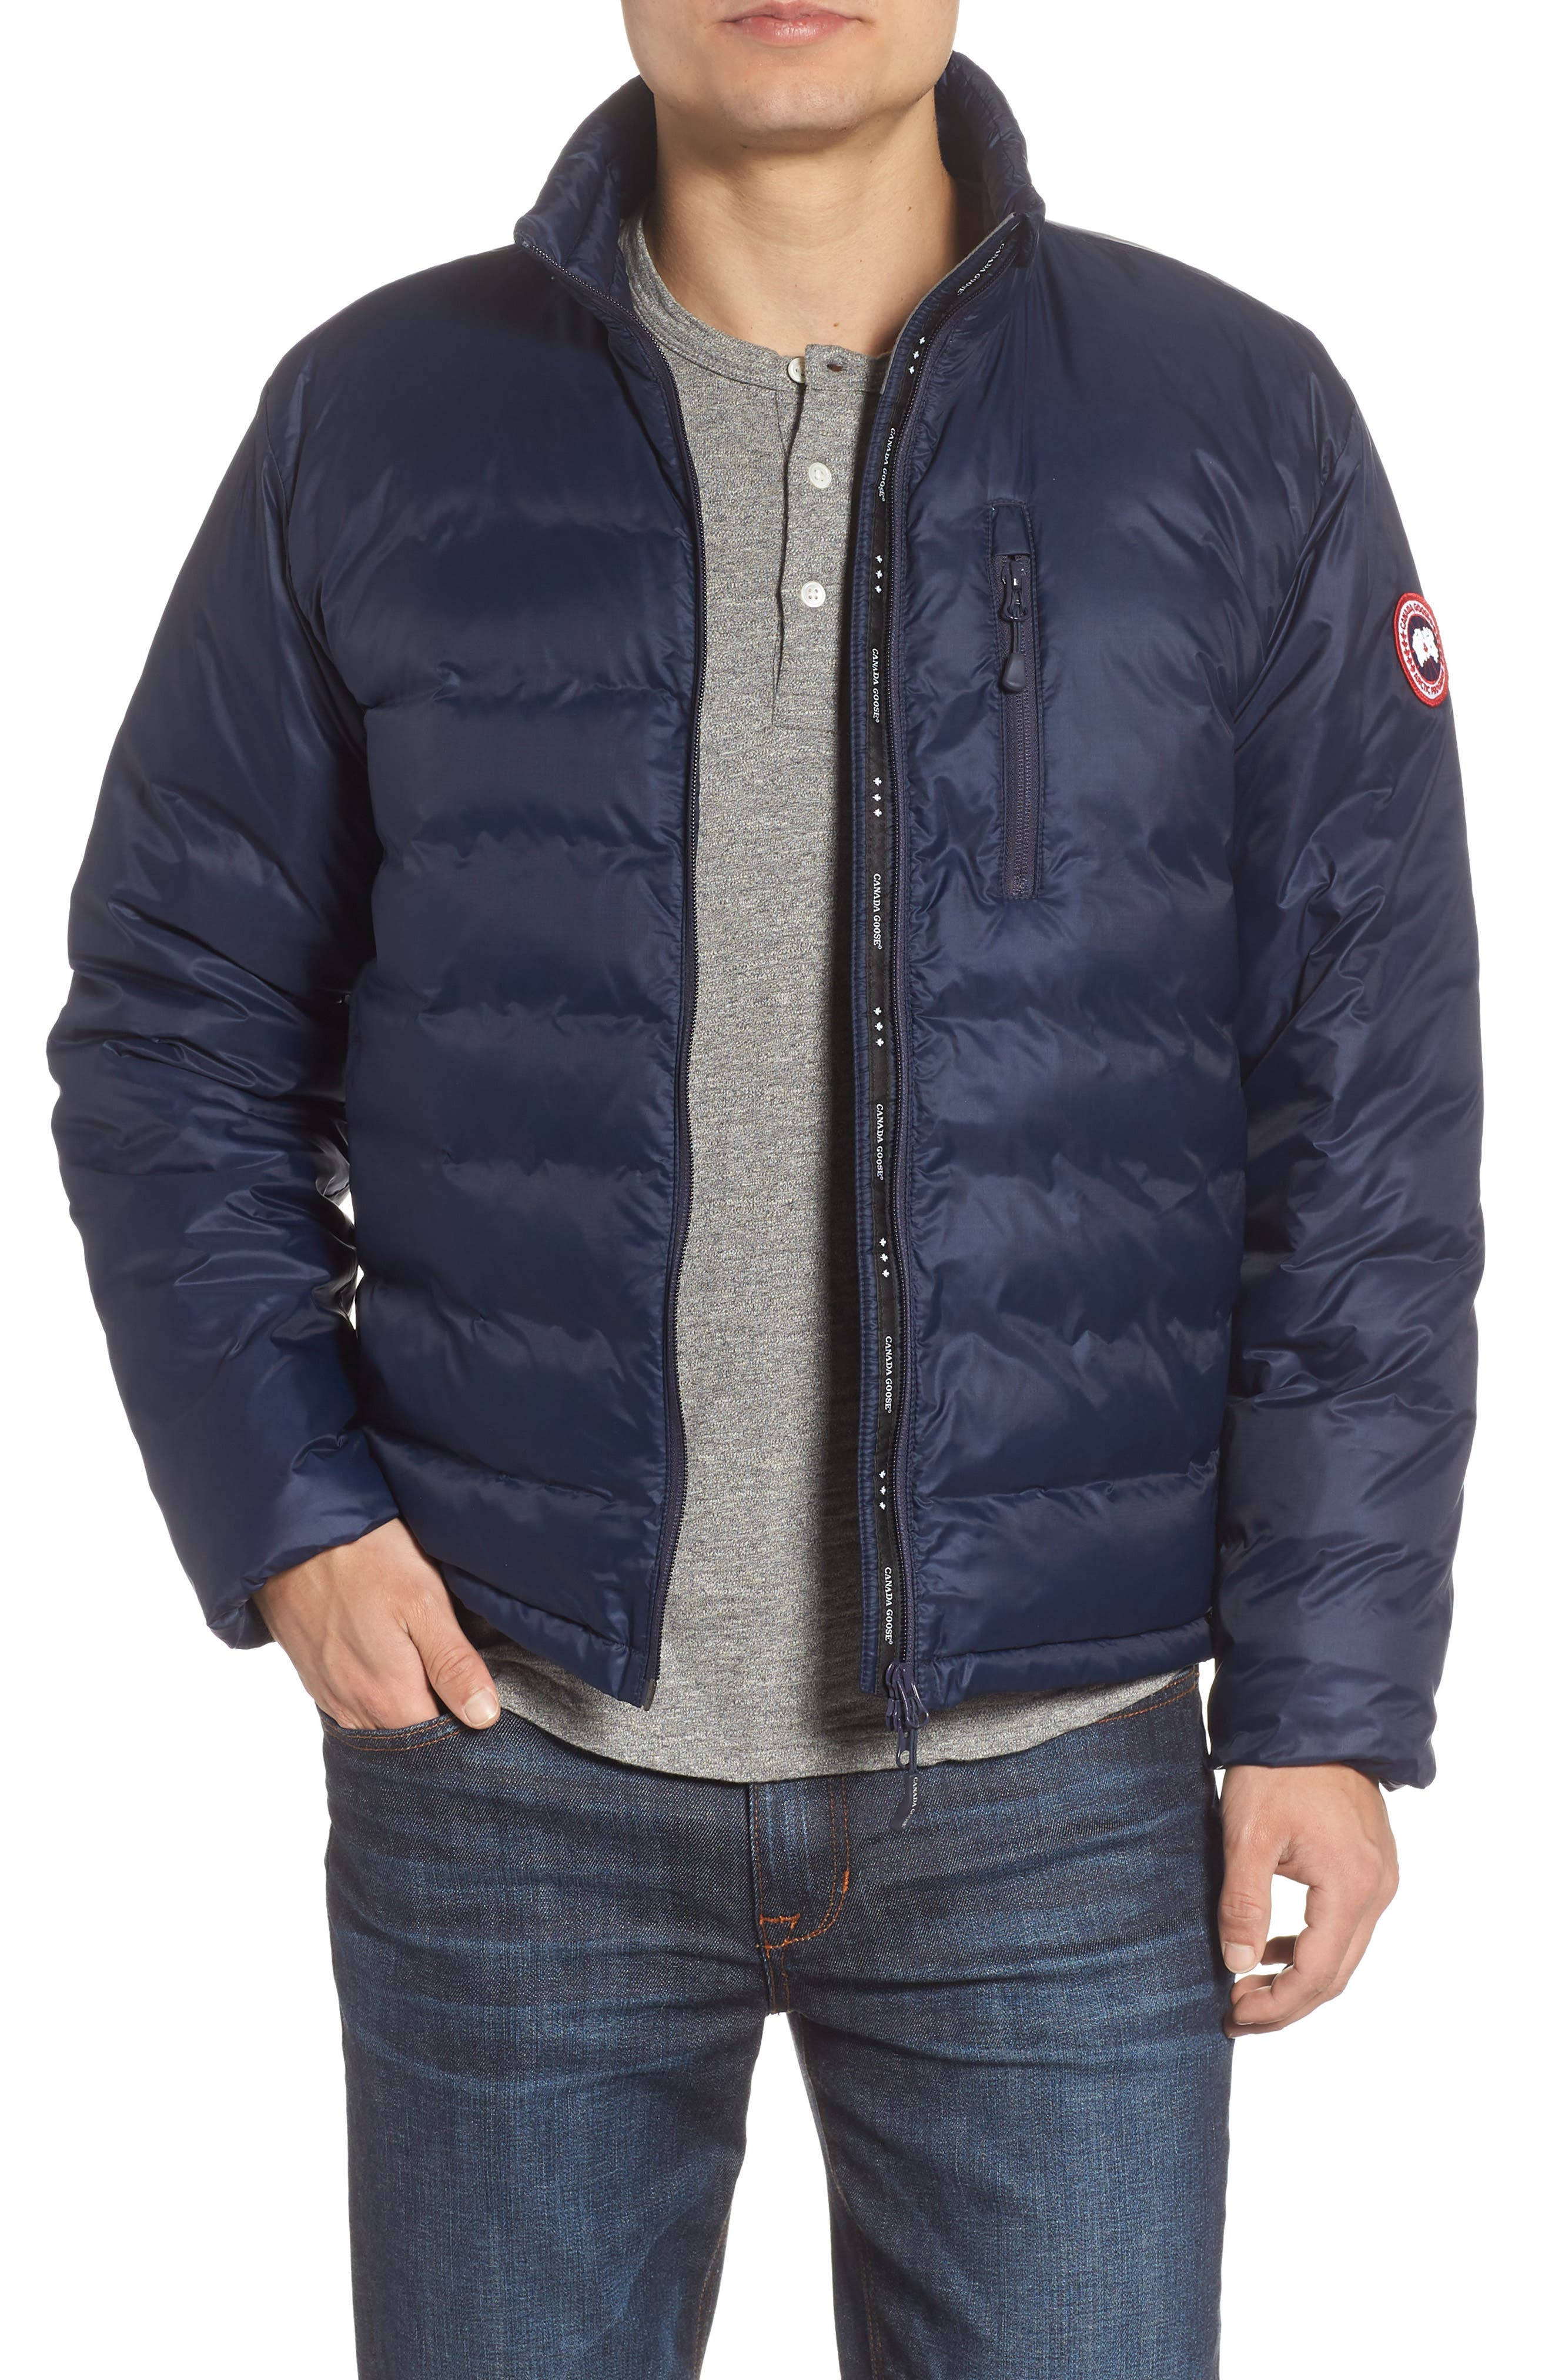 'Lodge' Slim Fit Packable Windproof 750 Down Fill Jacket,                         Main,                         color, ADMIRAL BLUE/ BLACK